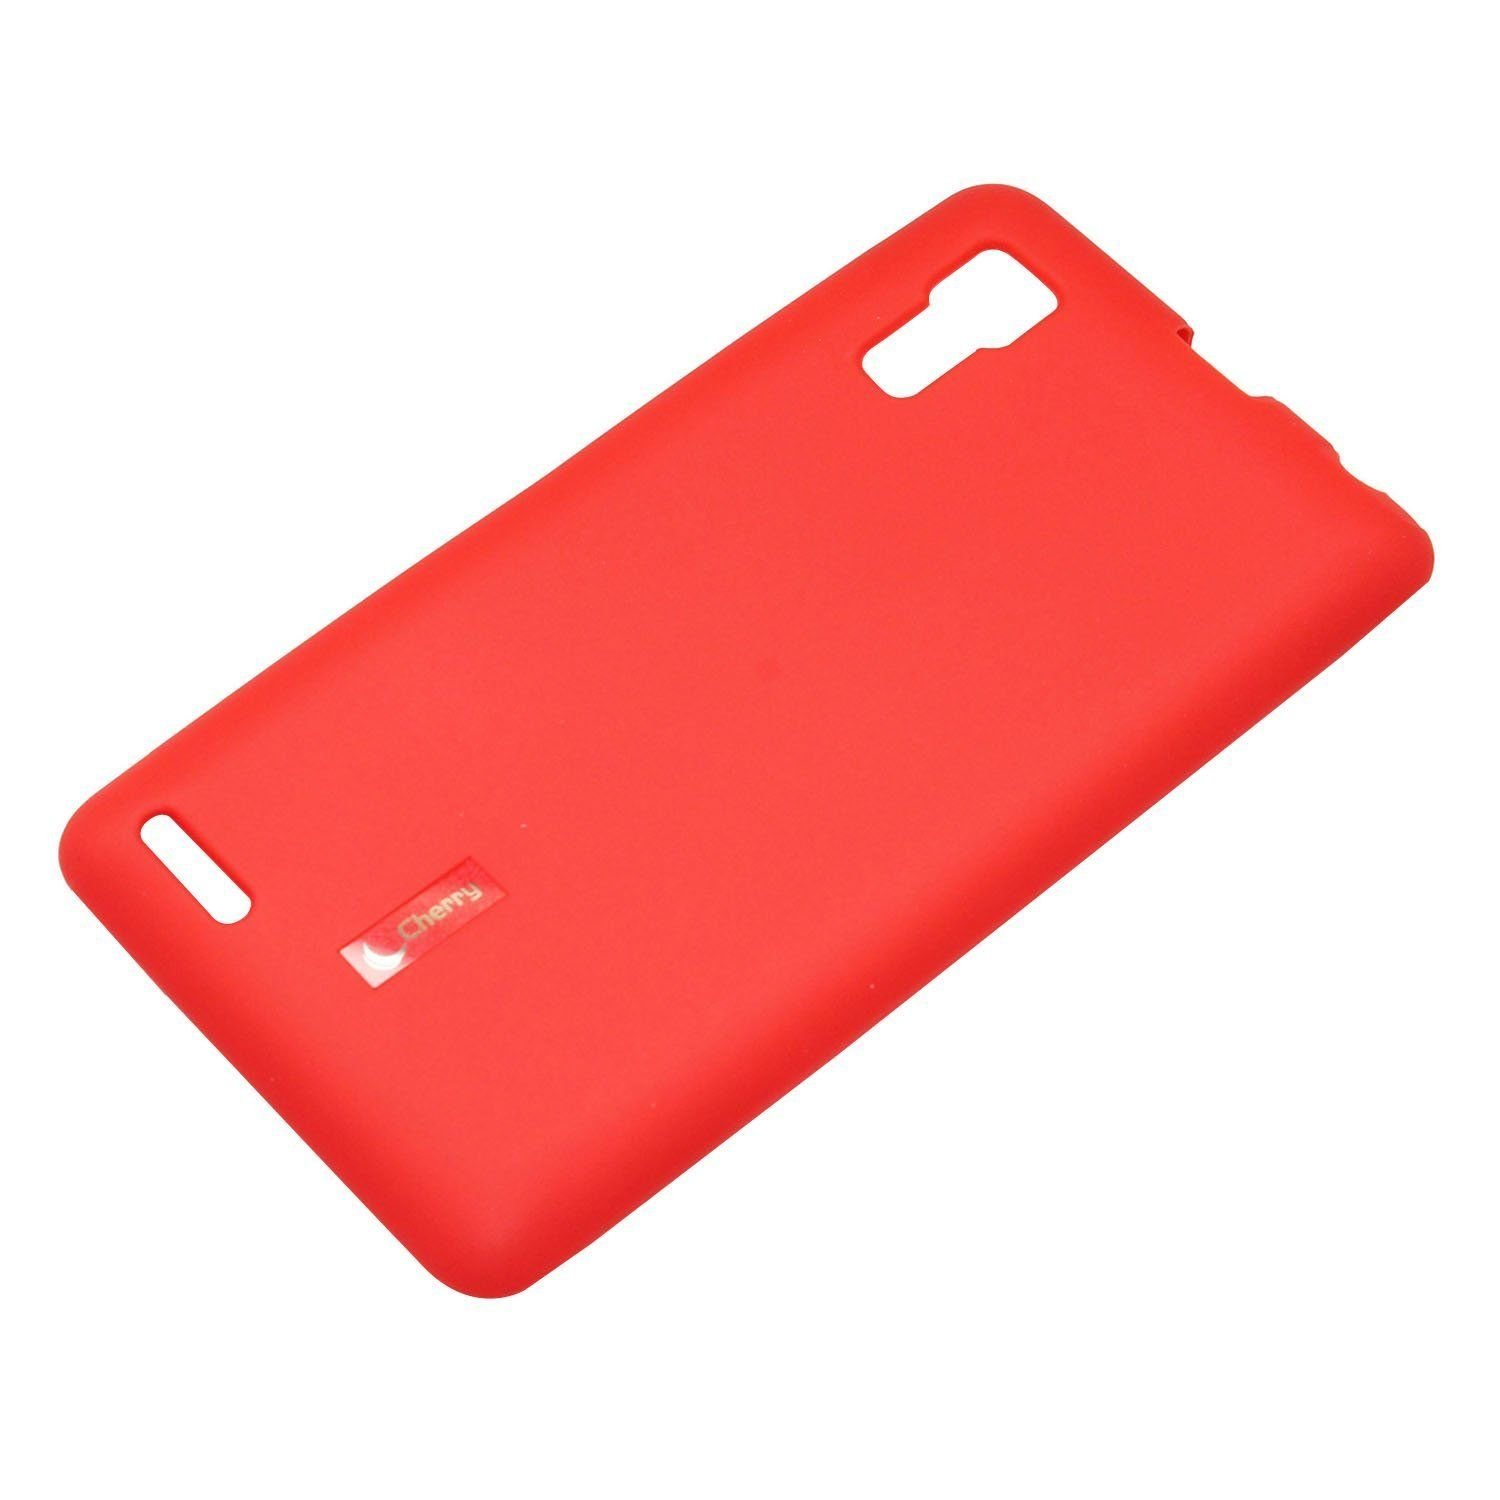 100% authentic 67ca9 698cf Caseous® Soft Matte Finish Rubberized Back Cover Case for Lenovo P780 (Red)